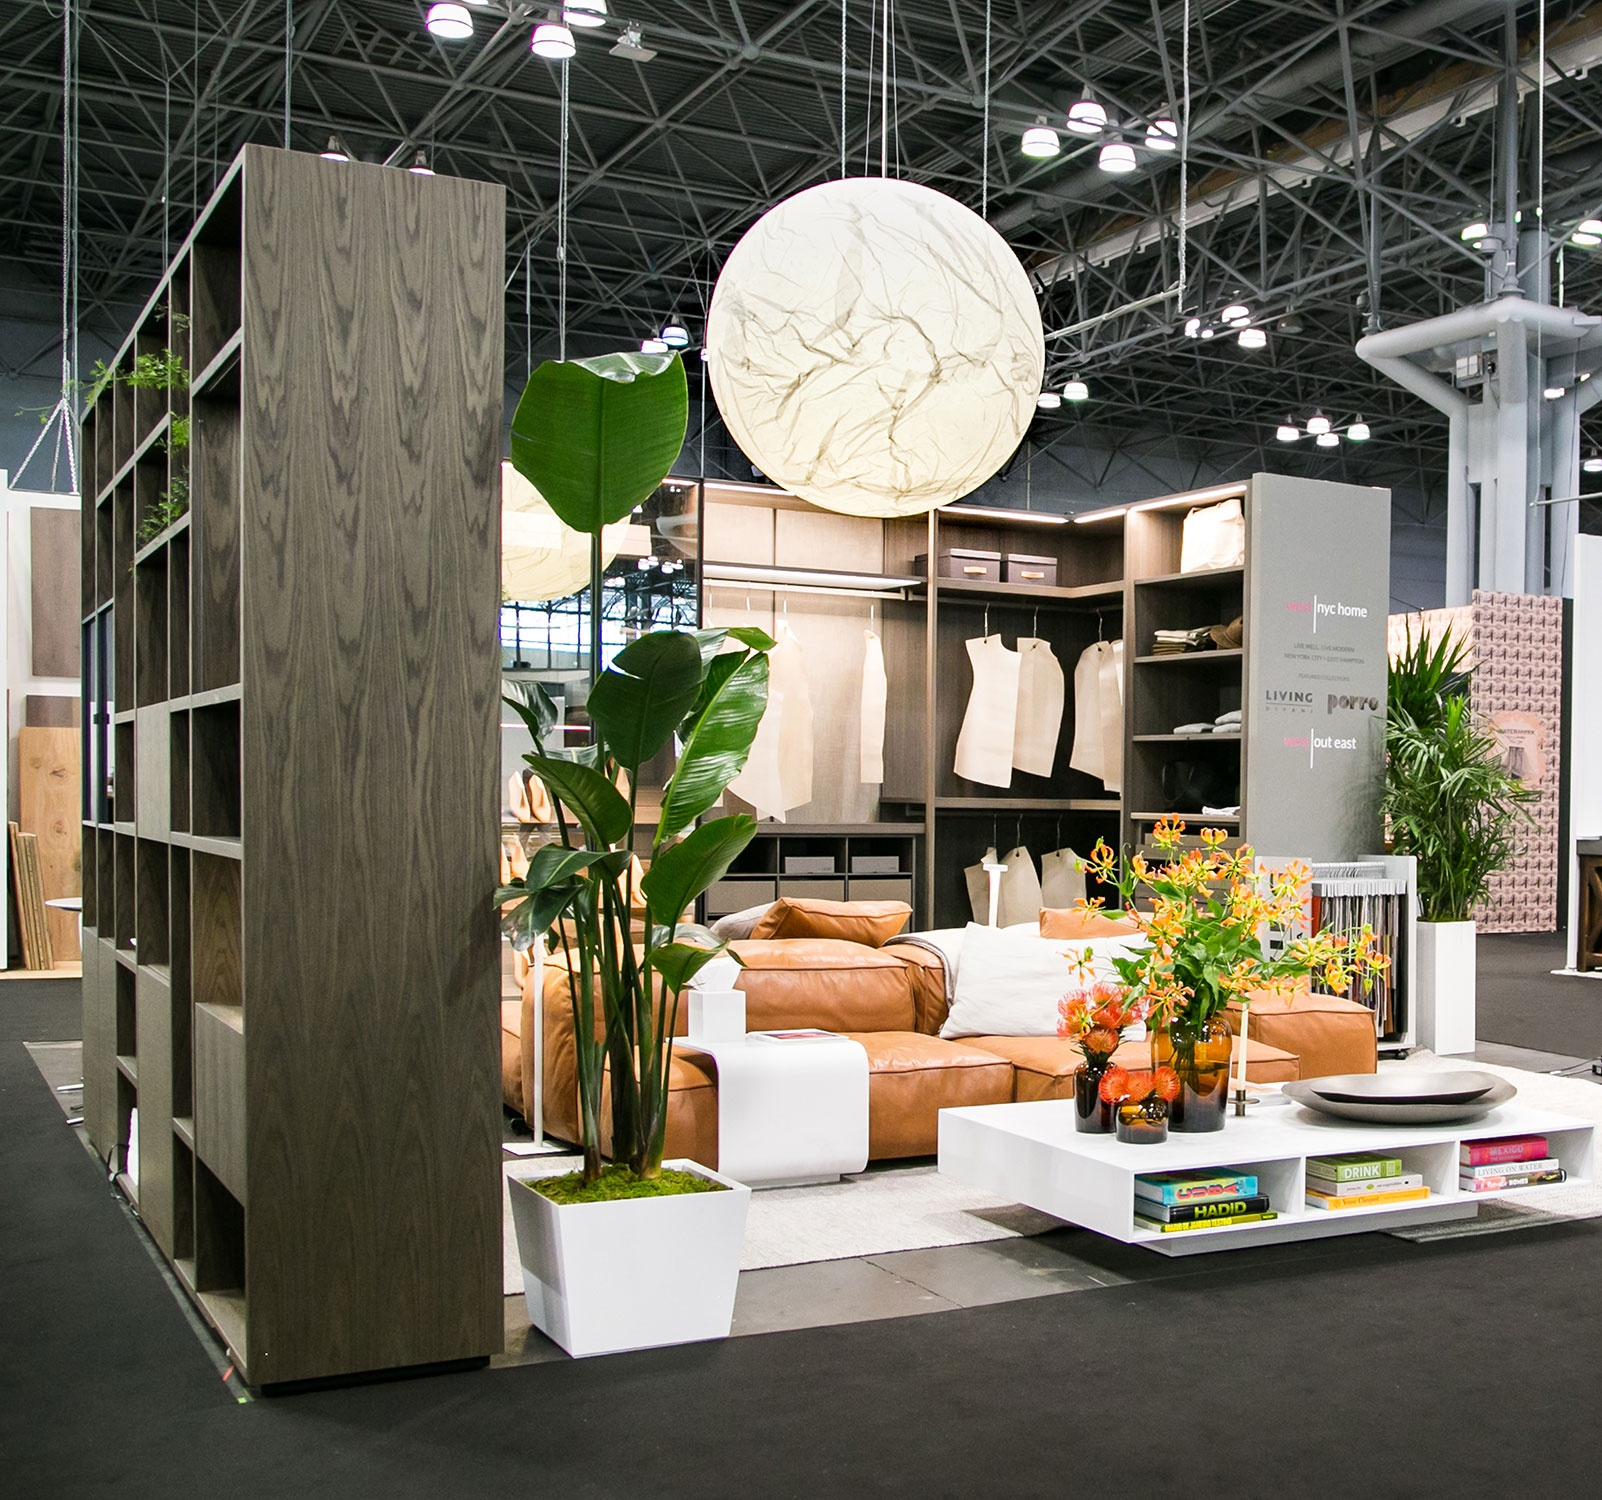 Porro Spa News Events Double Presence Of Porro At New York City Design Week 2018